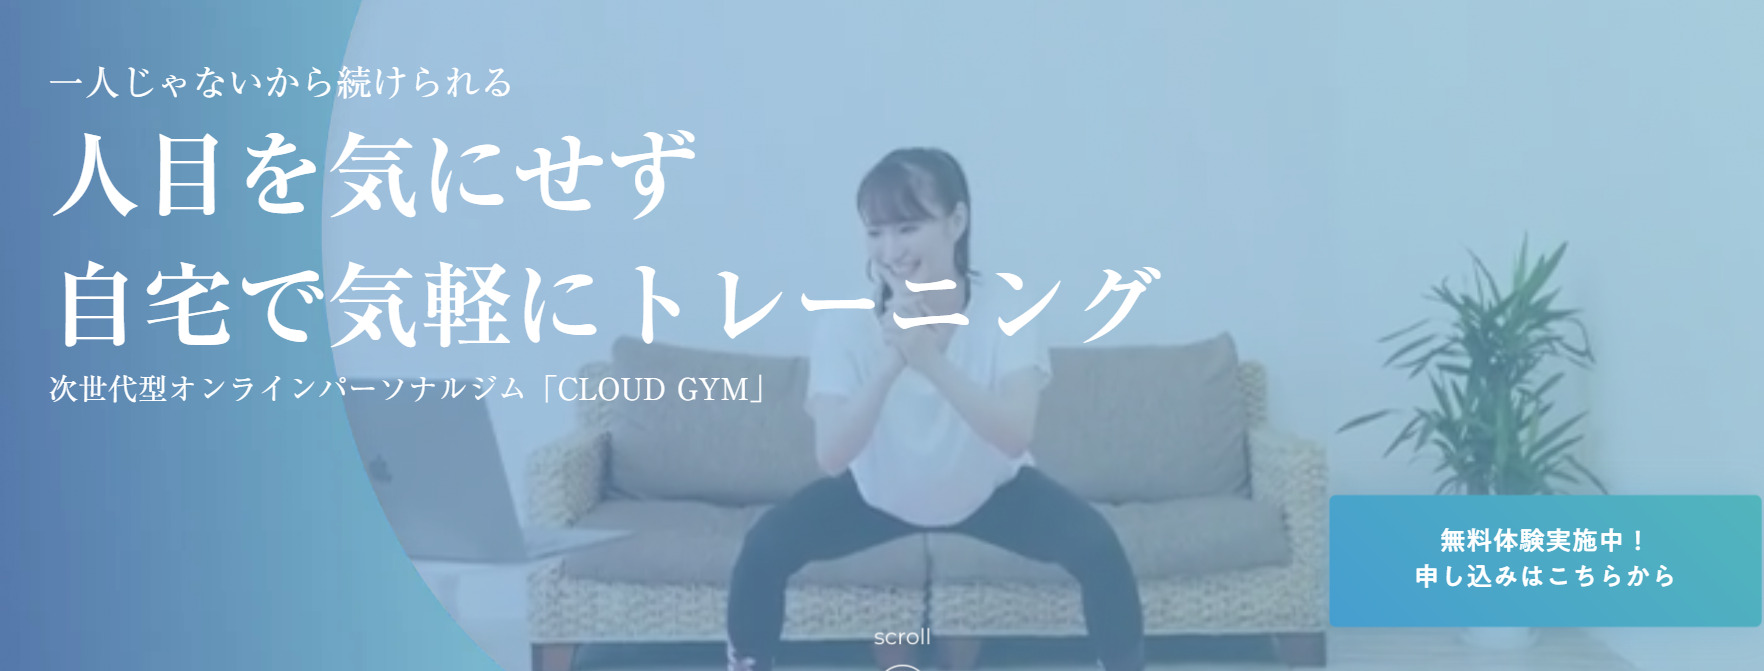 online-fitness-CLOUD-GYM